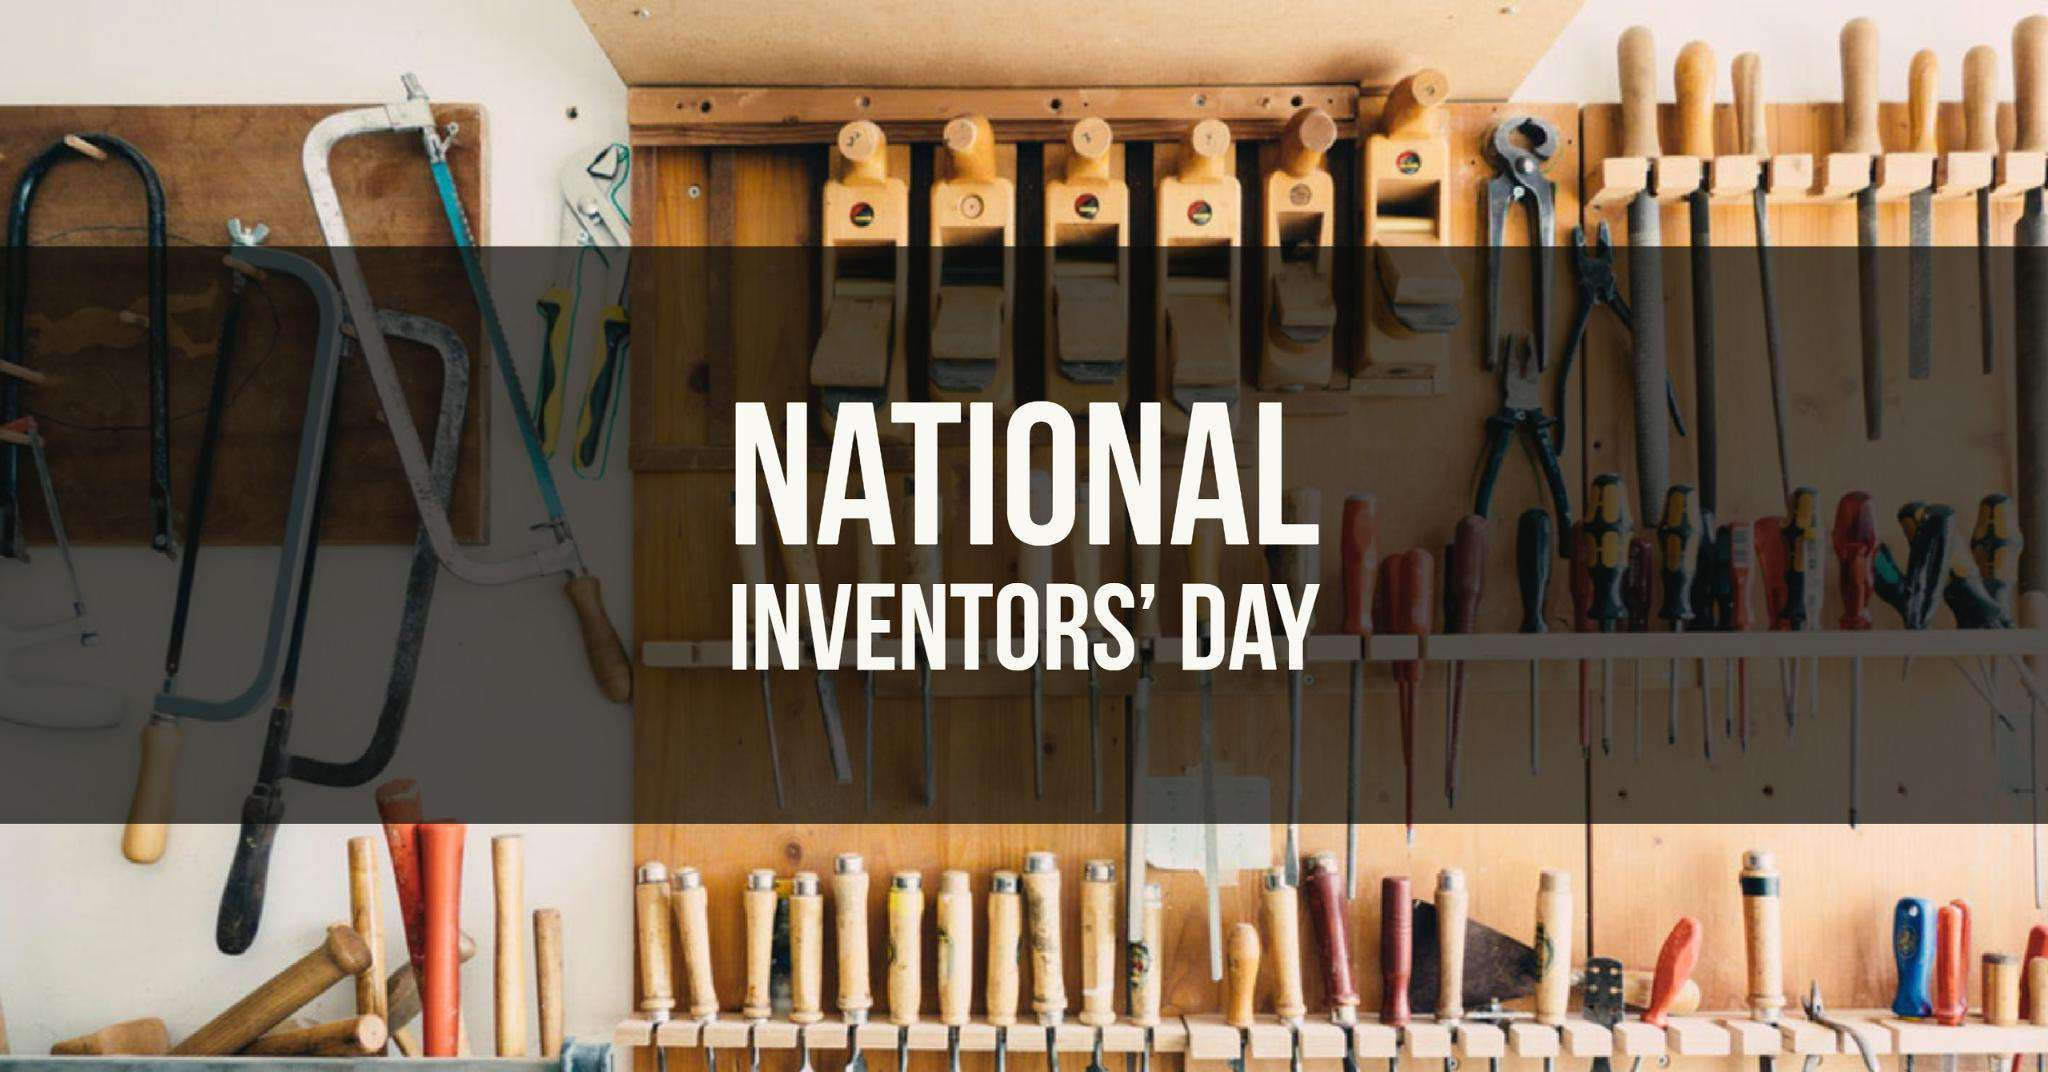 National Inventors' Day Wishes Beautiful Image